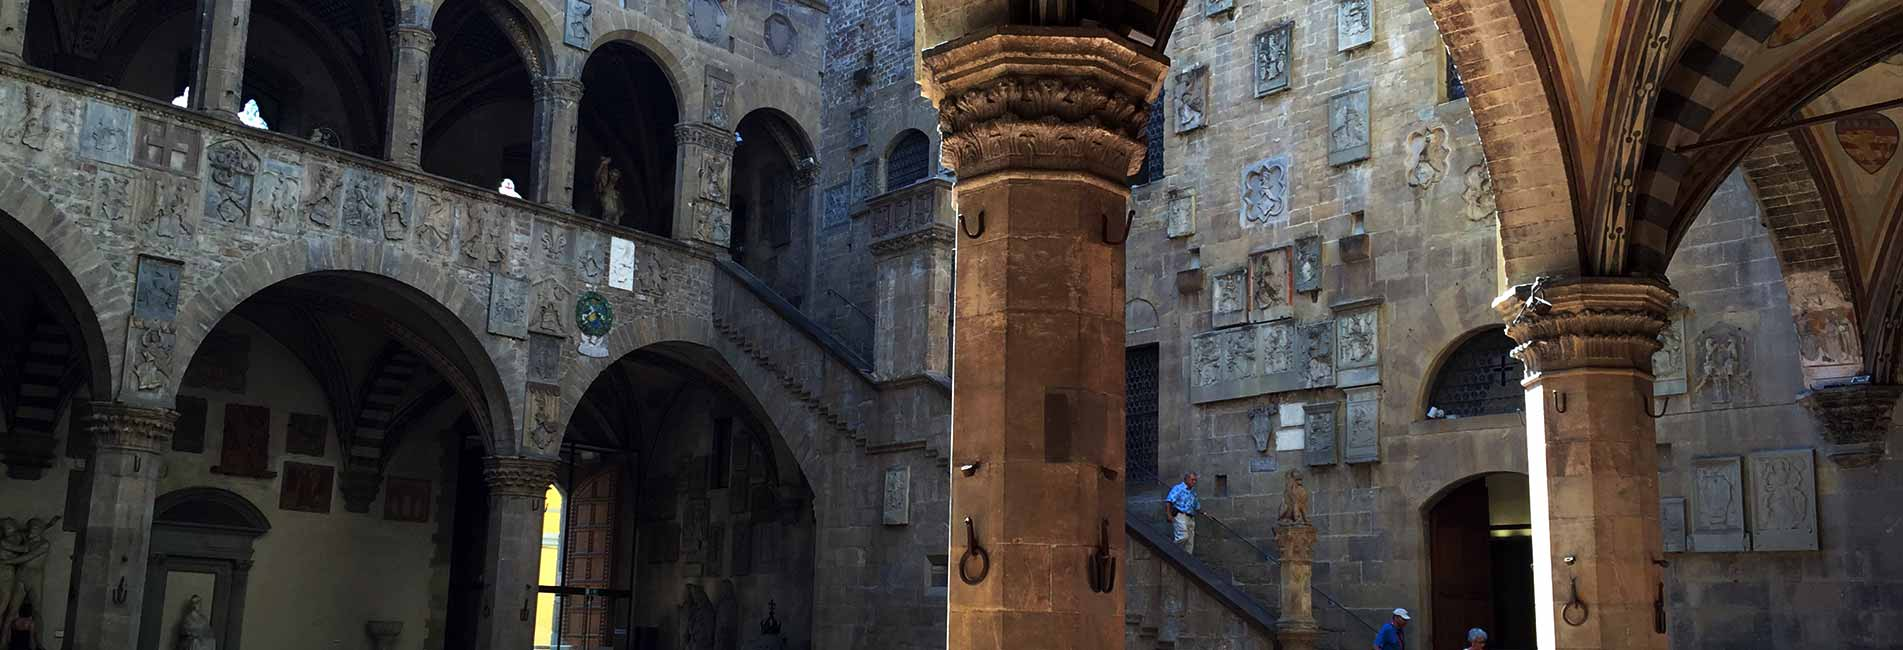 florence_bargello_museum_courtyard